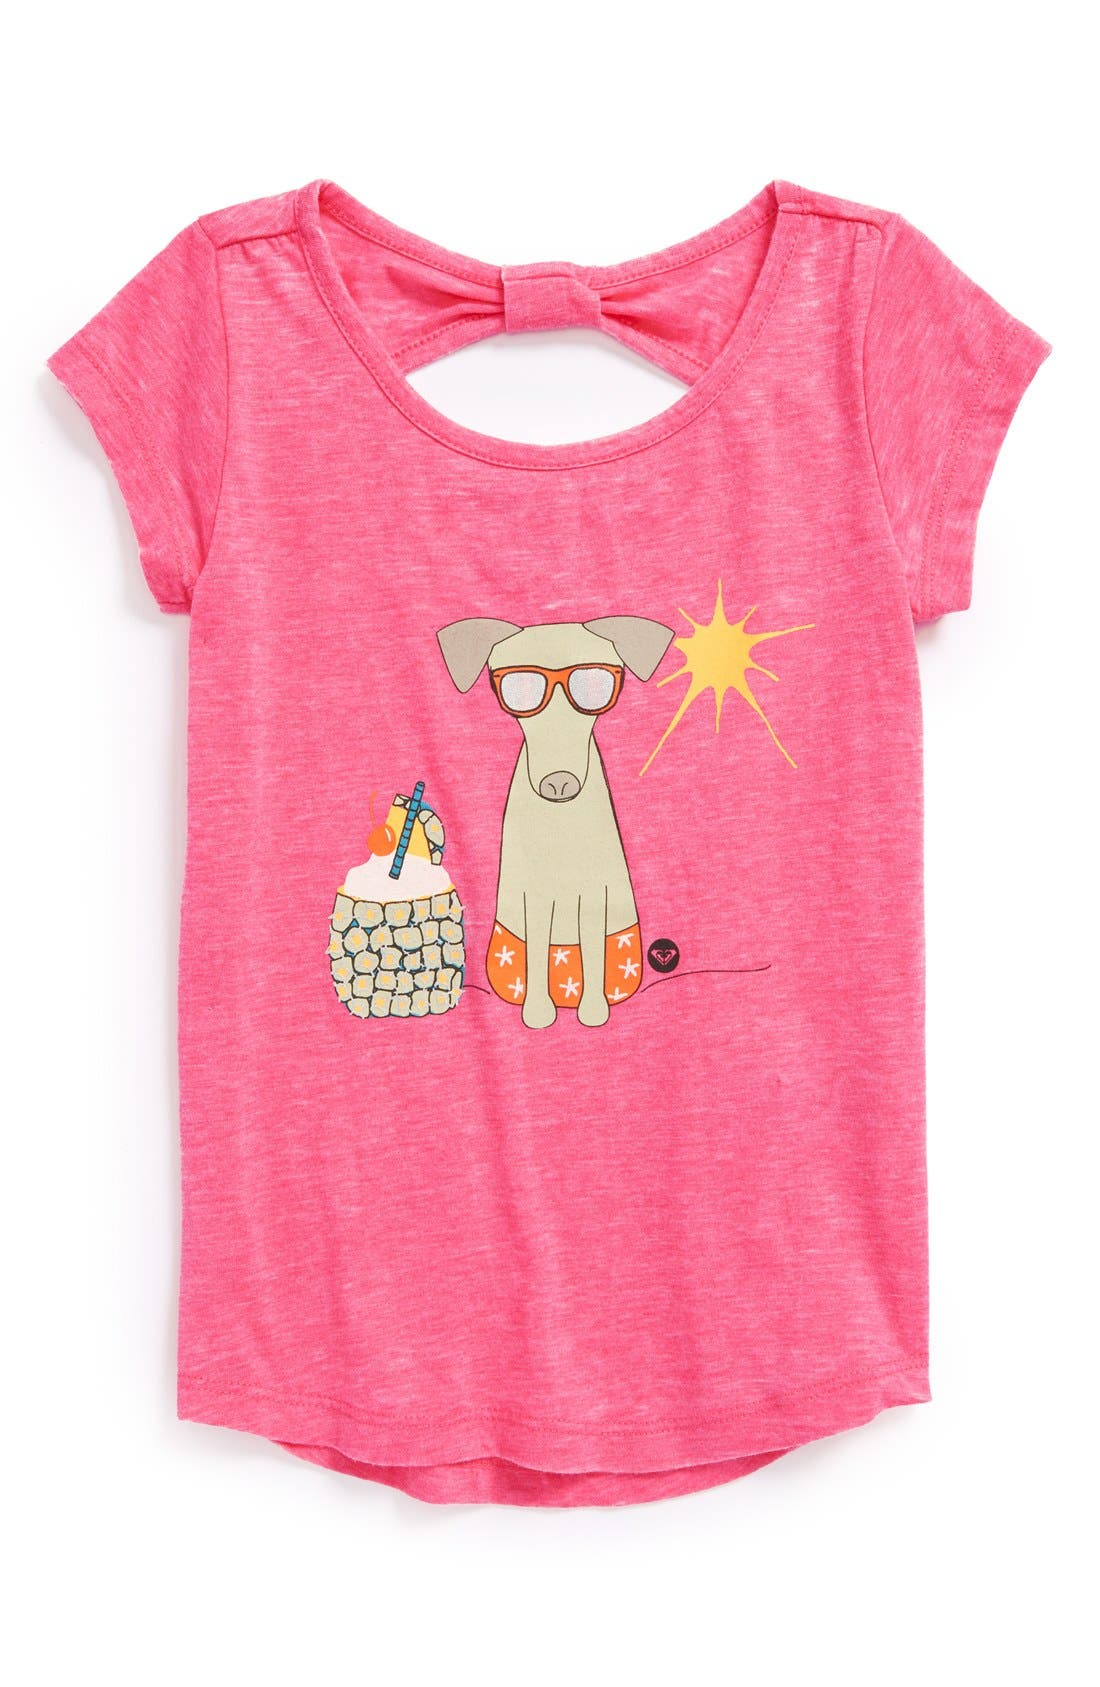 Alternate Image 1 Selected - Roxy 'Warm Day' Screenprint Tee (Toddler Girls)